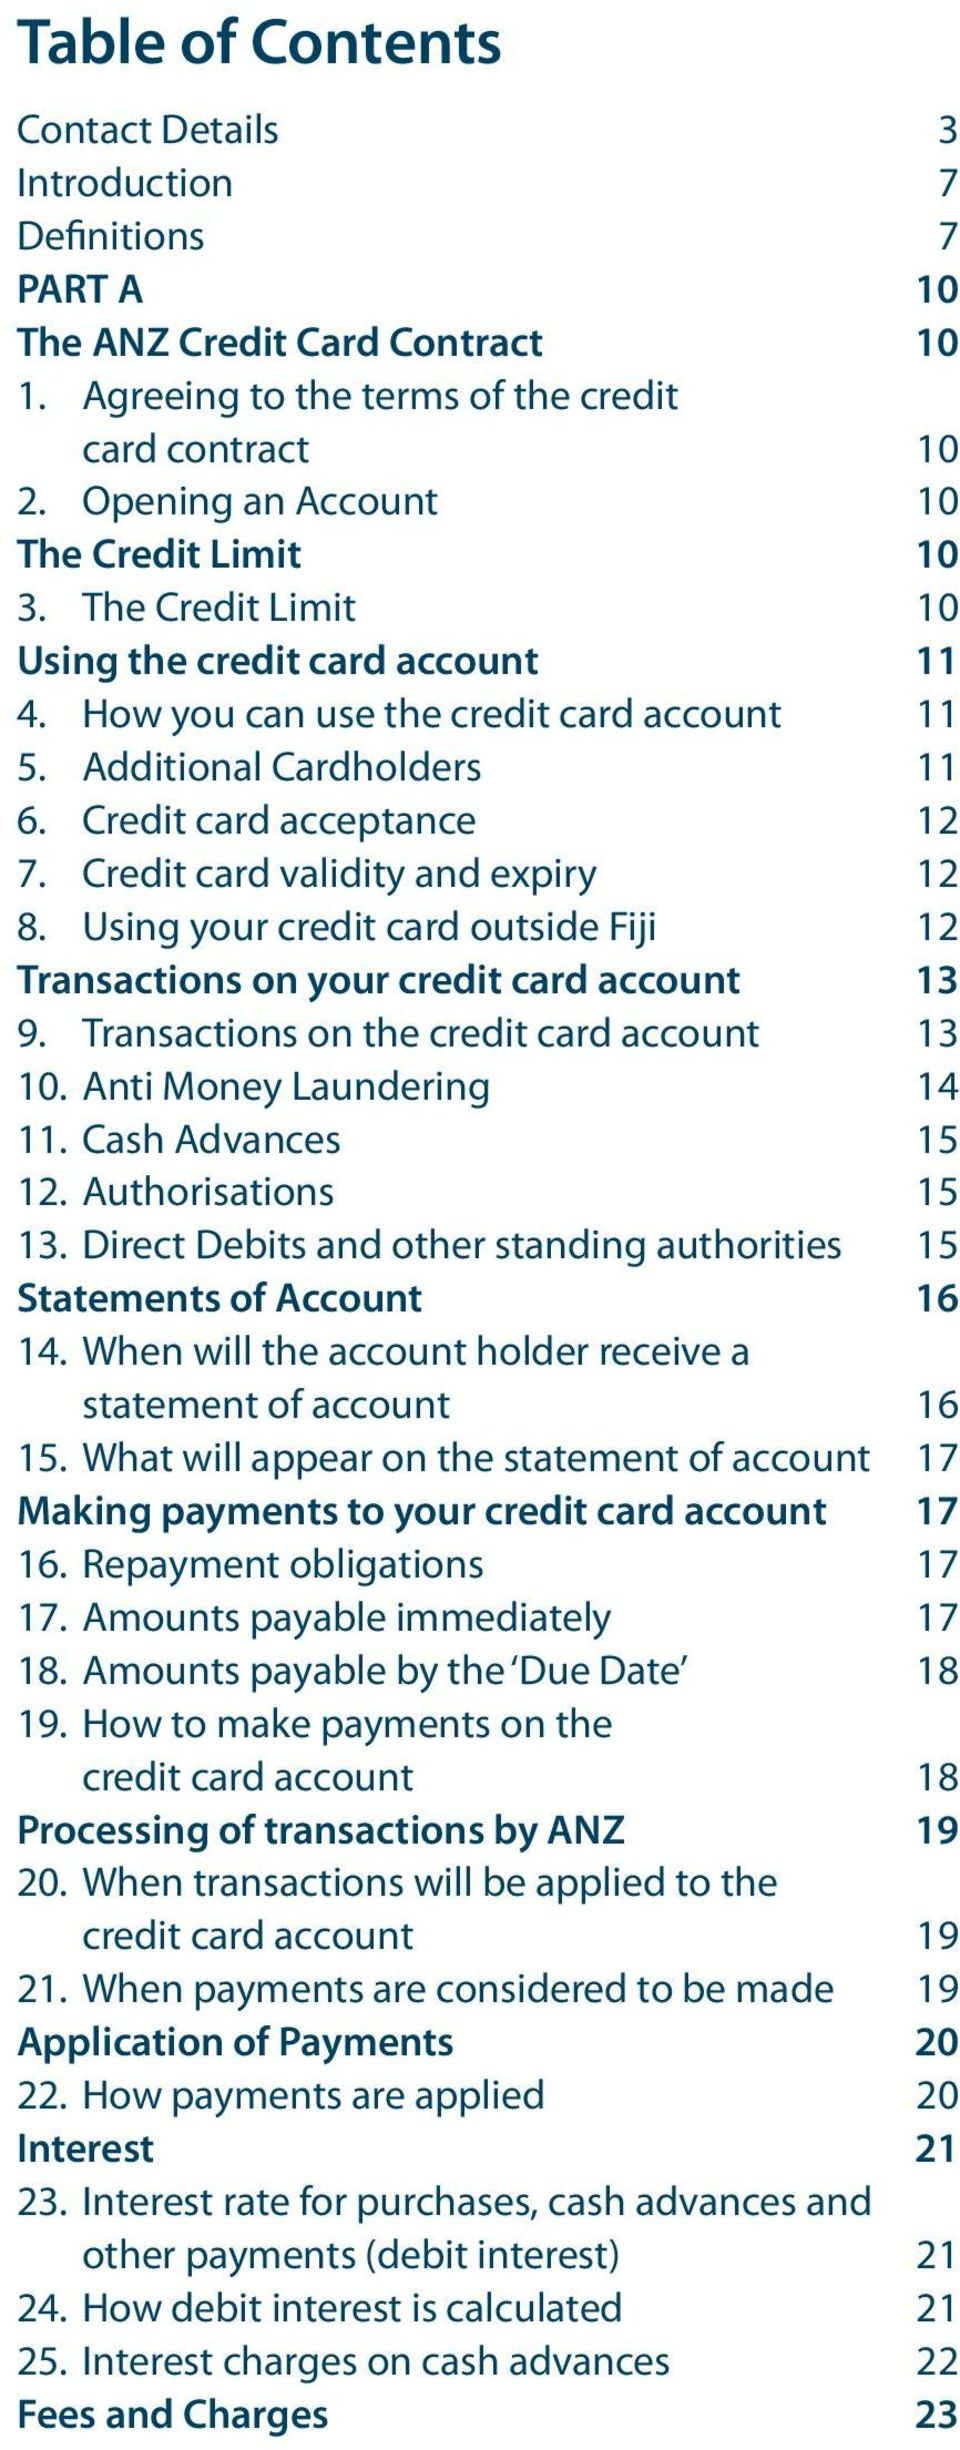 Credit card acceptance 12 7. Credit card validity and expiry 12 8. Using your credit card outside Fiji 12 Transactions on your credit card account 13 9. Transactions on the credit card account 13 10.